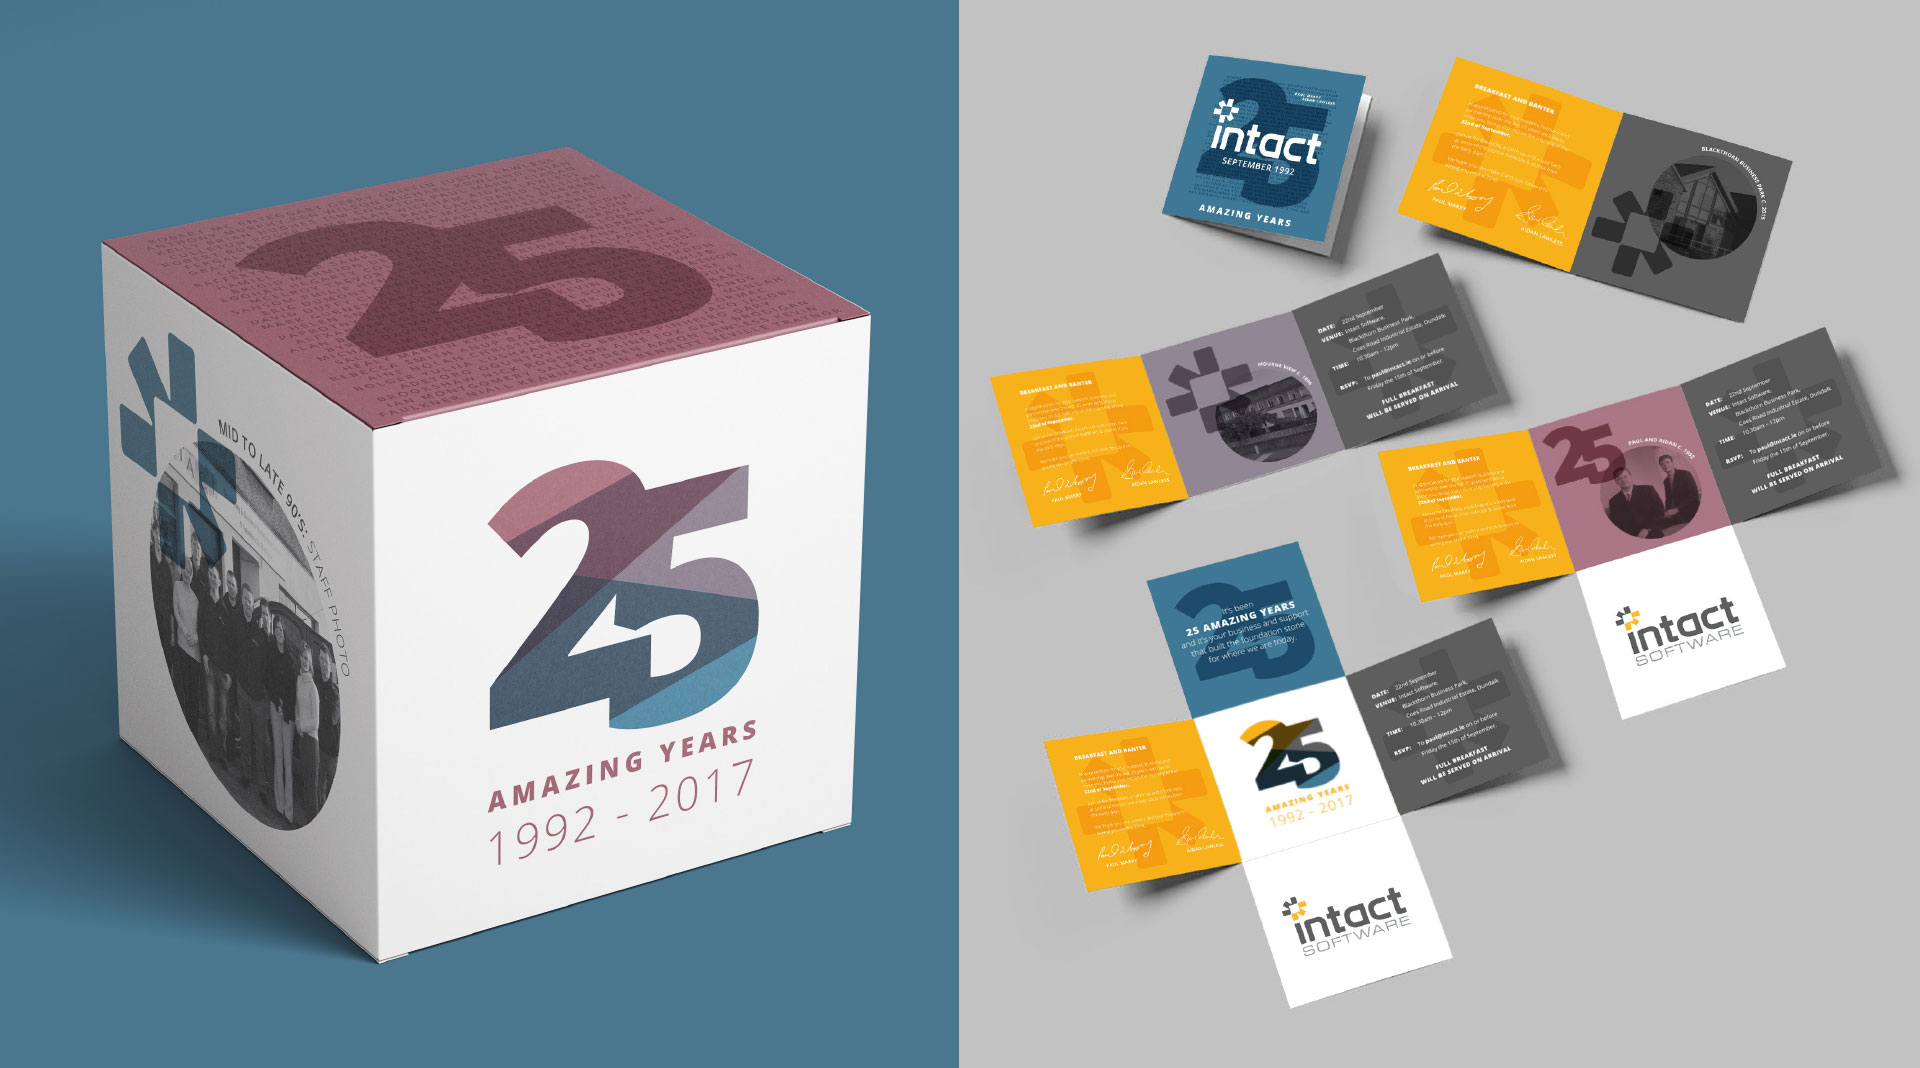 Intact 25 Years large cubes exhibition design and bespoke invitation design.